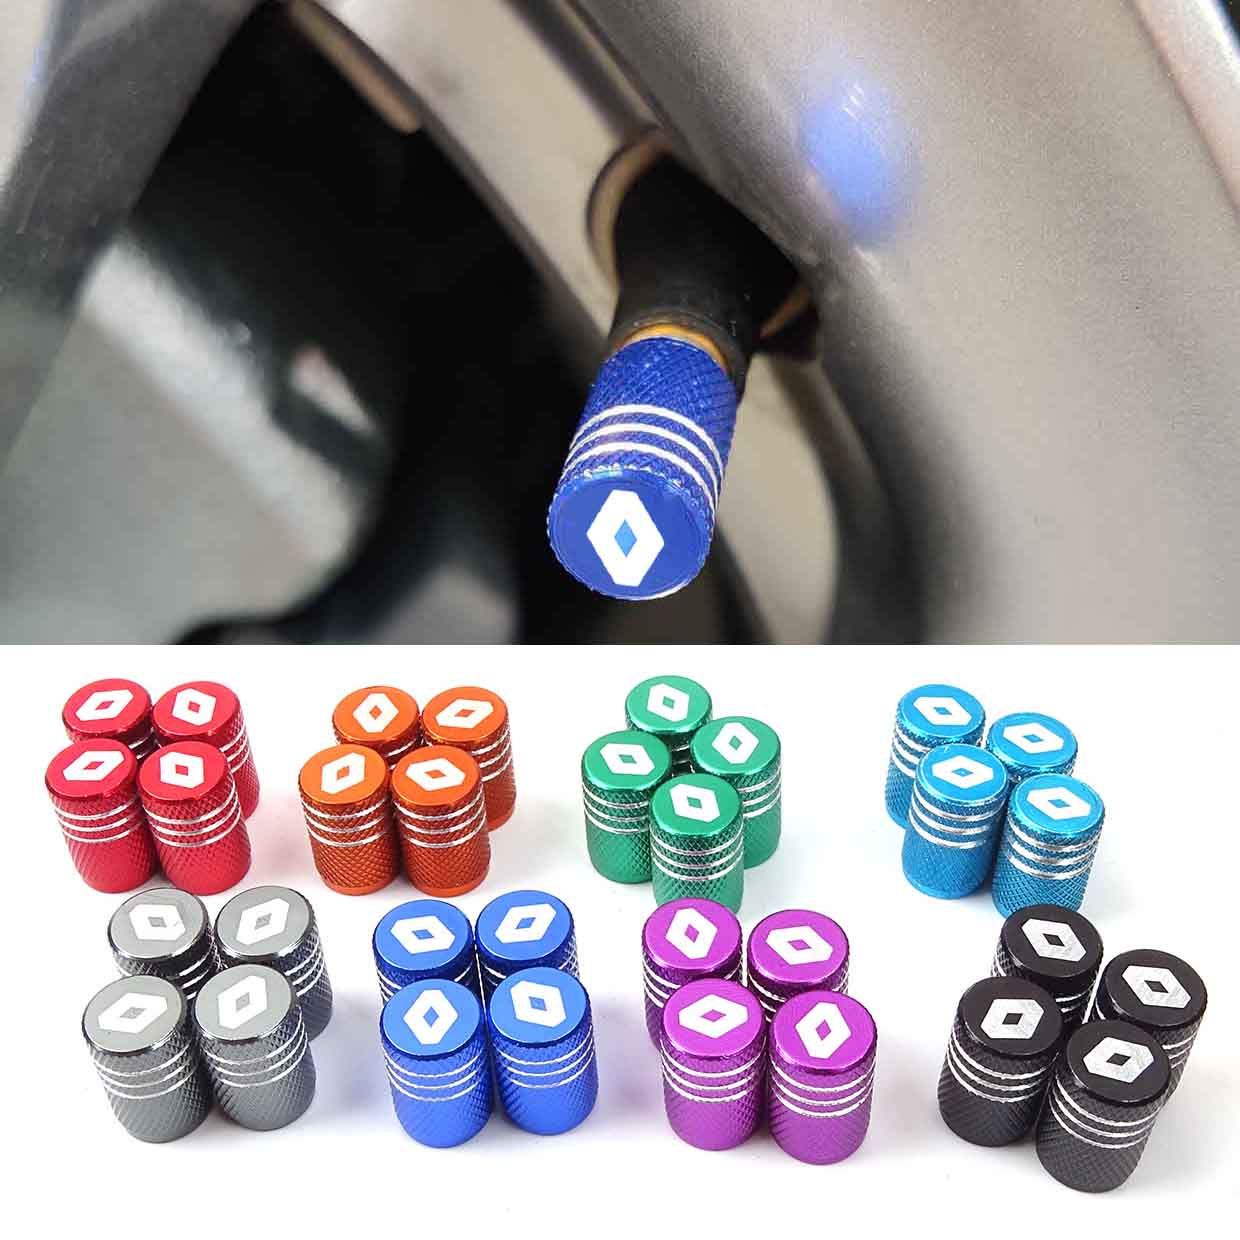 Car Styling 4PCS Auto Fit For Renault Megane 2 Duster Logan Captur Clio Laguna 3 Fluence Kadjar Car Wheel Tire Valve Caps Case